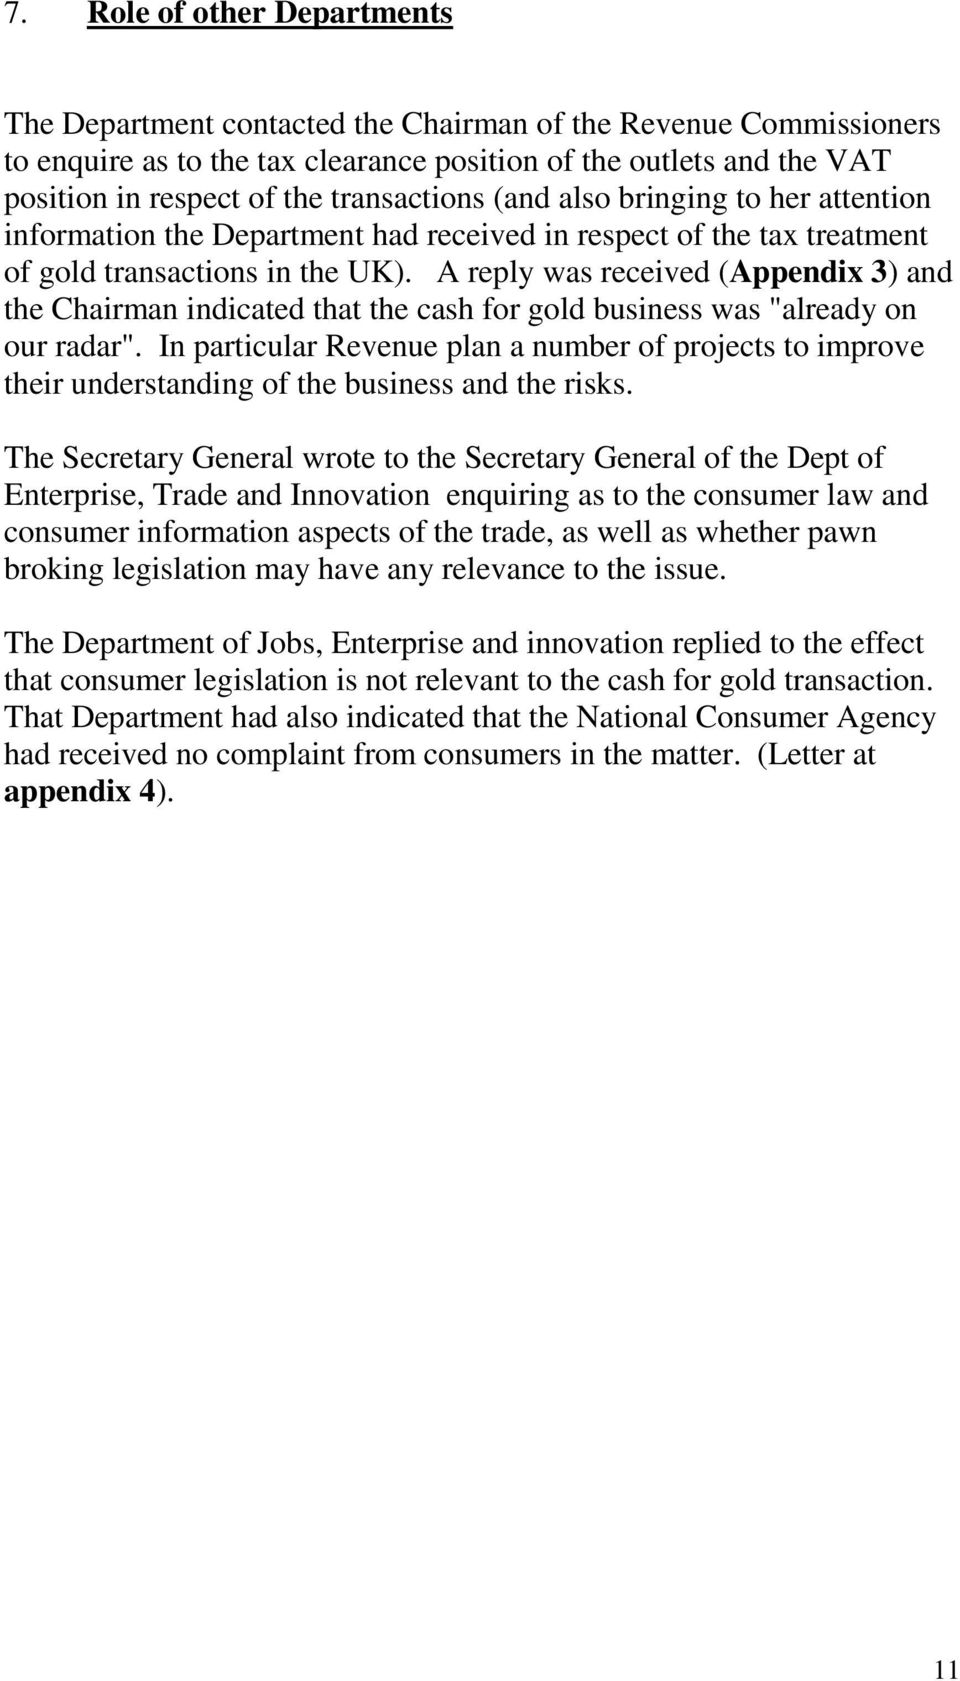 "A reply was received (Appendix 3) and the Chairman indicated that the cash for gold business was ""already on our radar""."